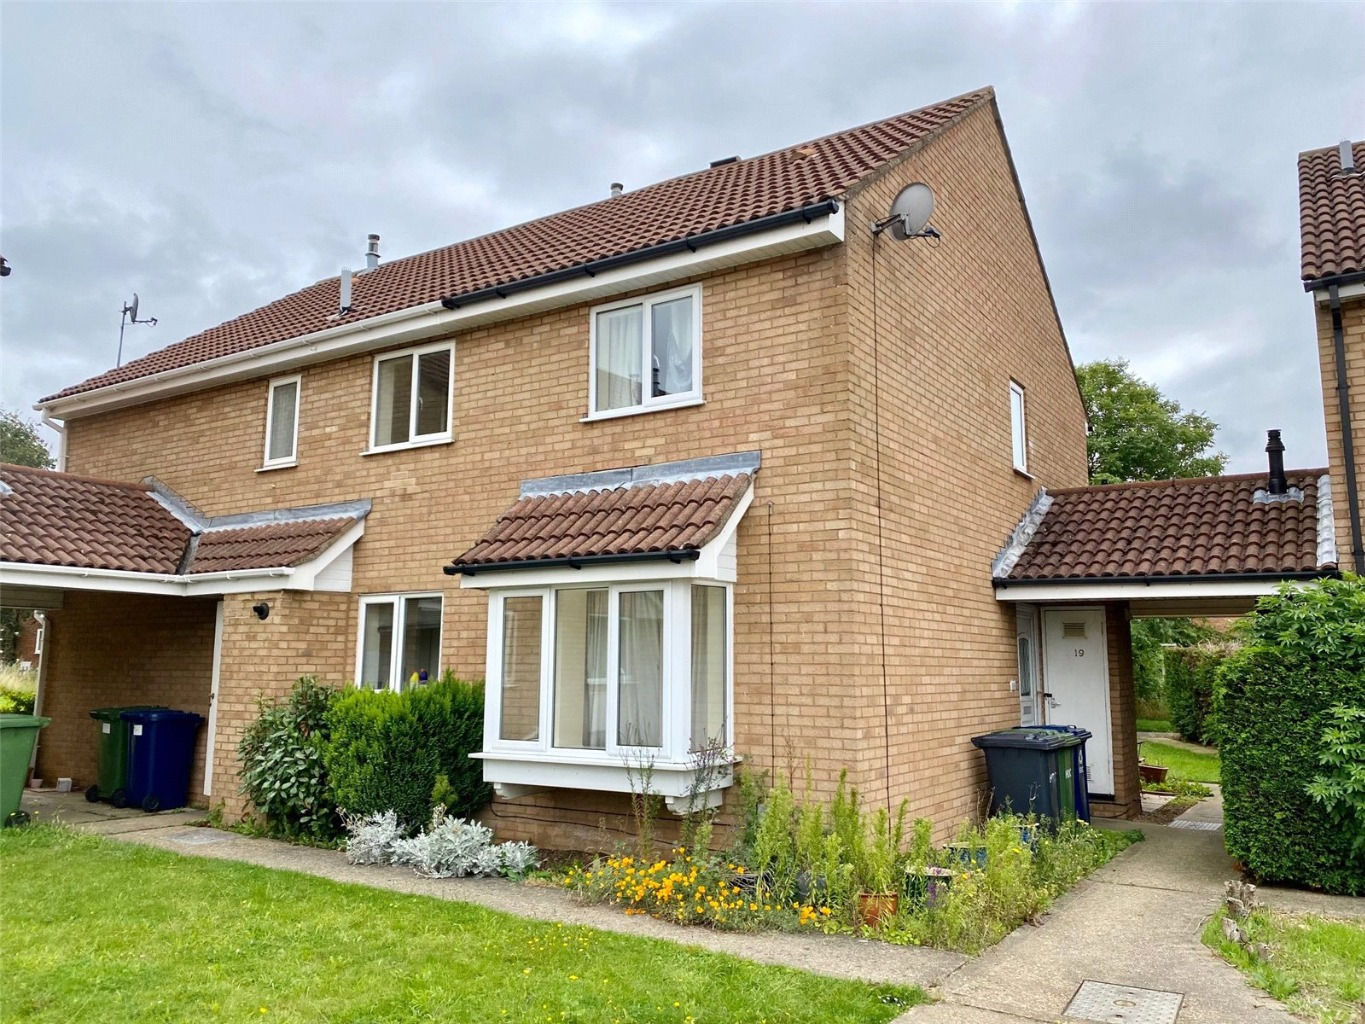 2 bed  for sale in Roe Green, St. Neots, PE19